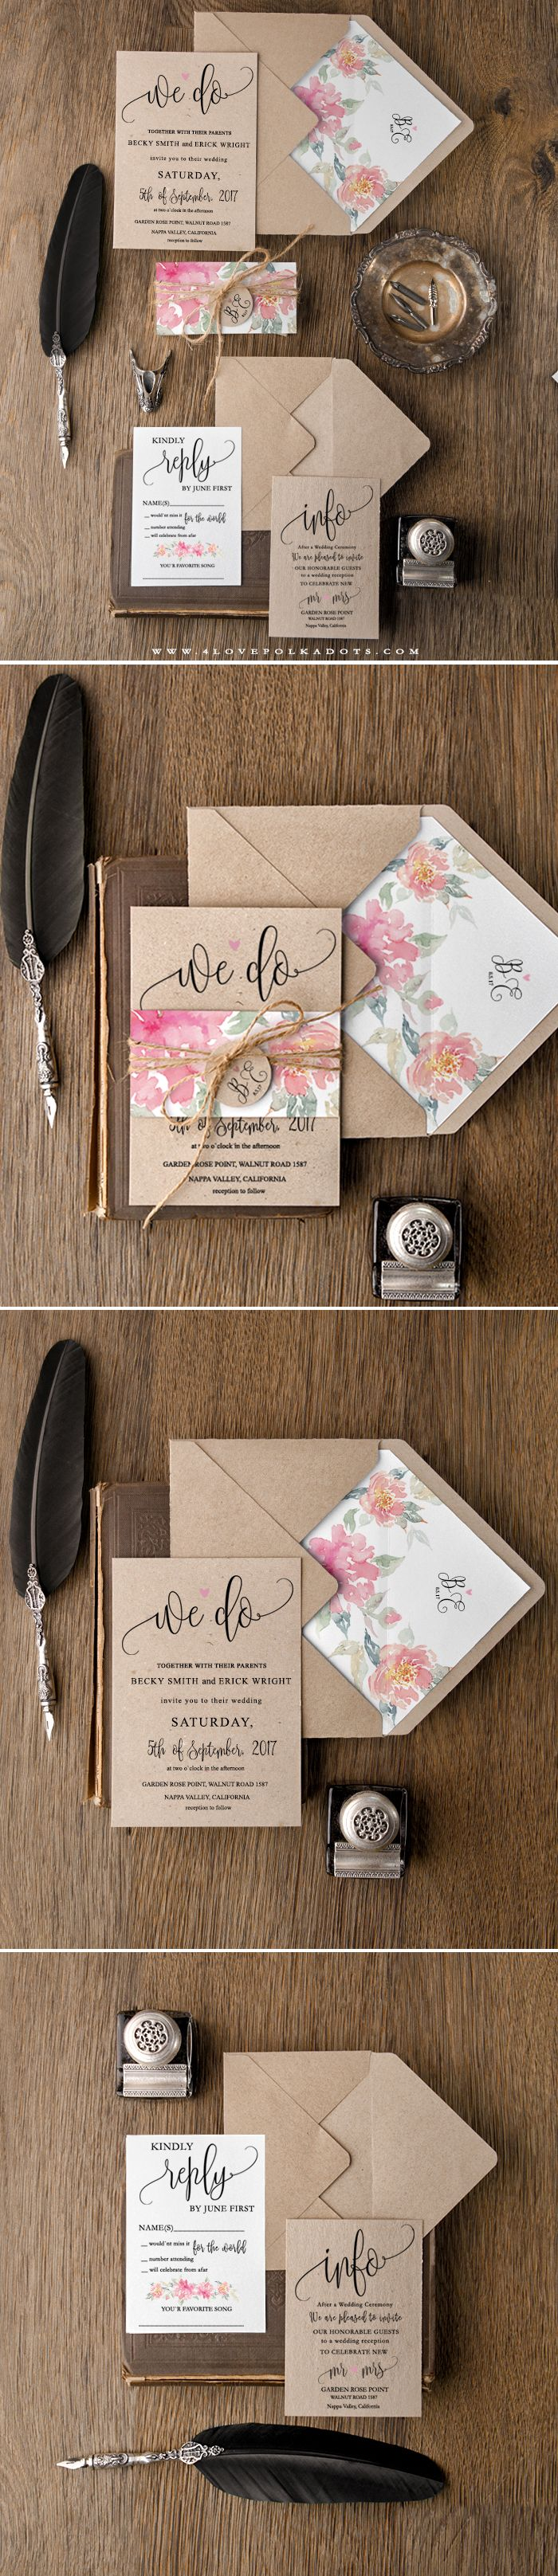 Floral Wedding Invitations - eco papers, flowers & calligraphy printing #flowerpower #summerwedding #weddingideas